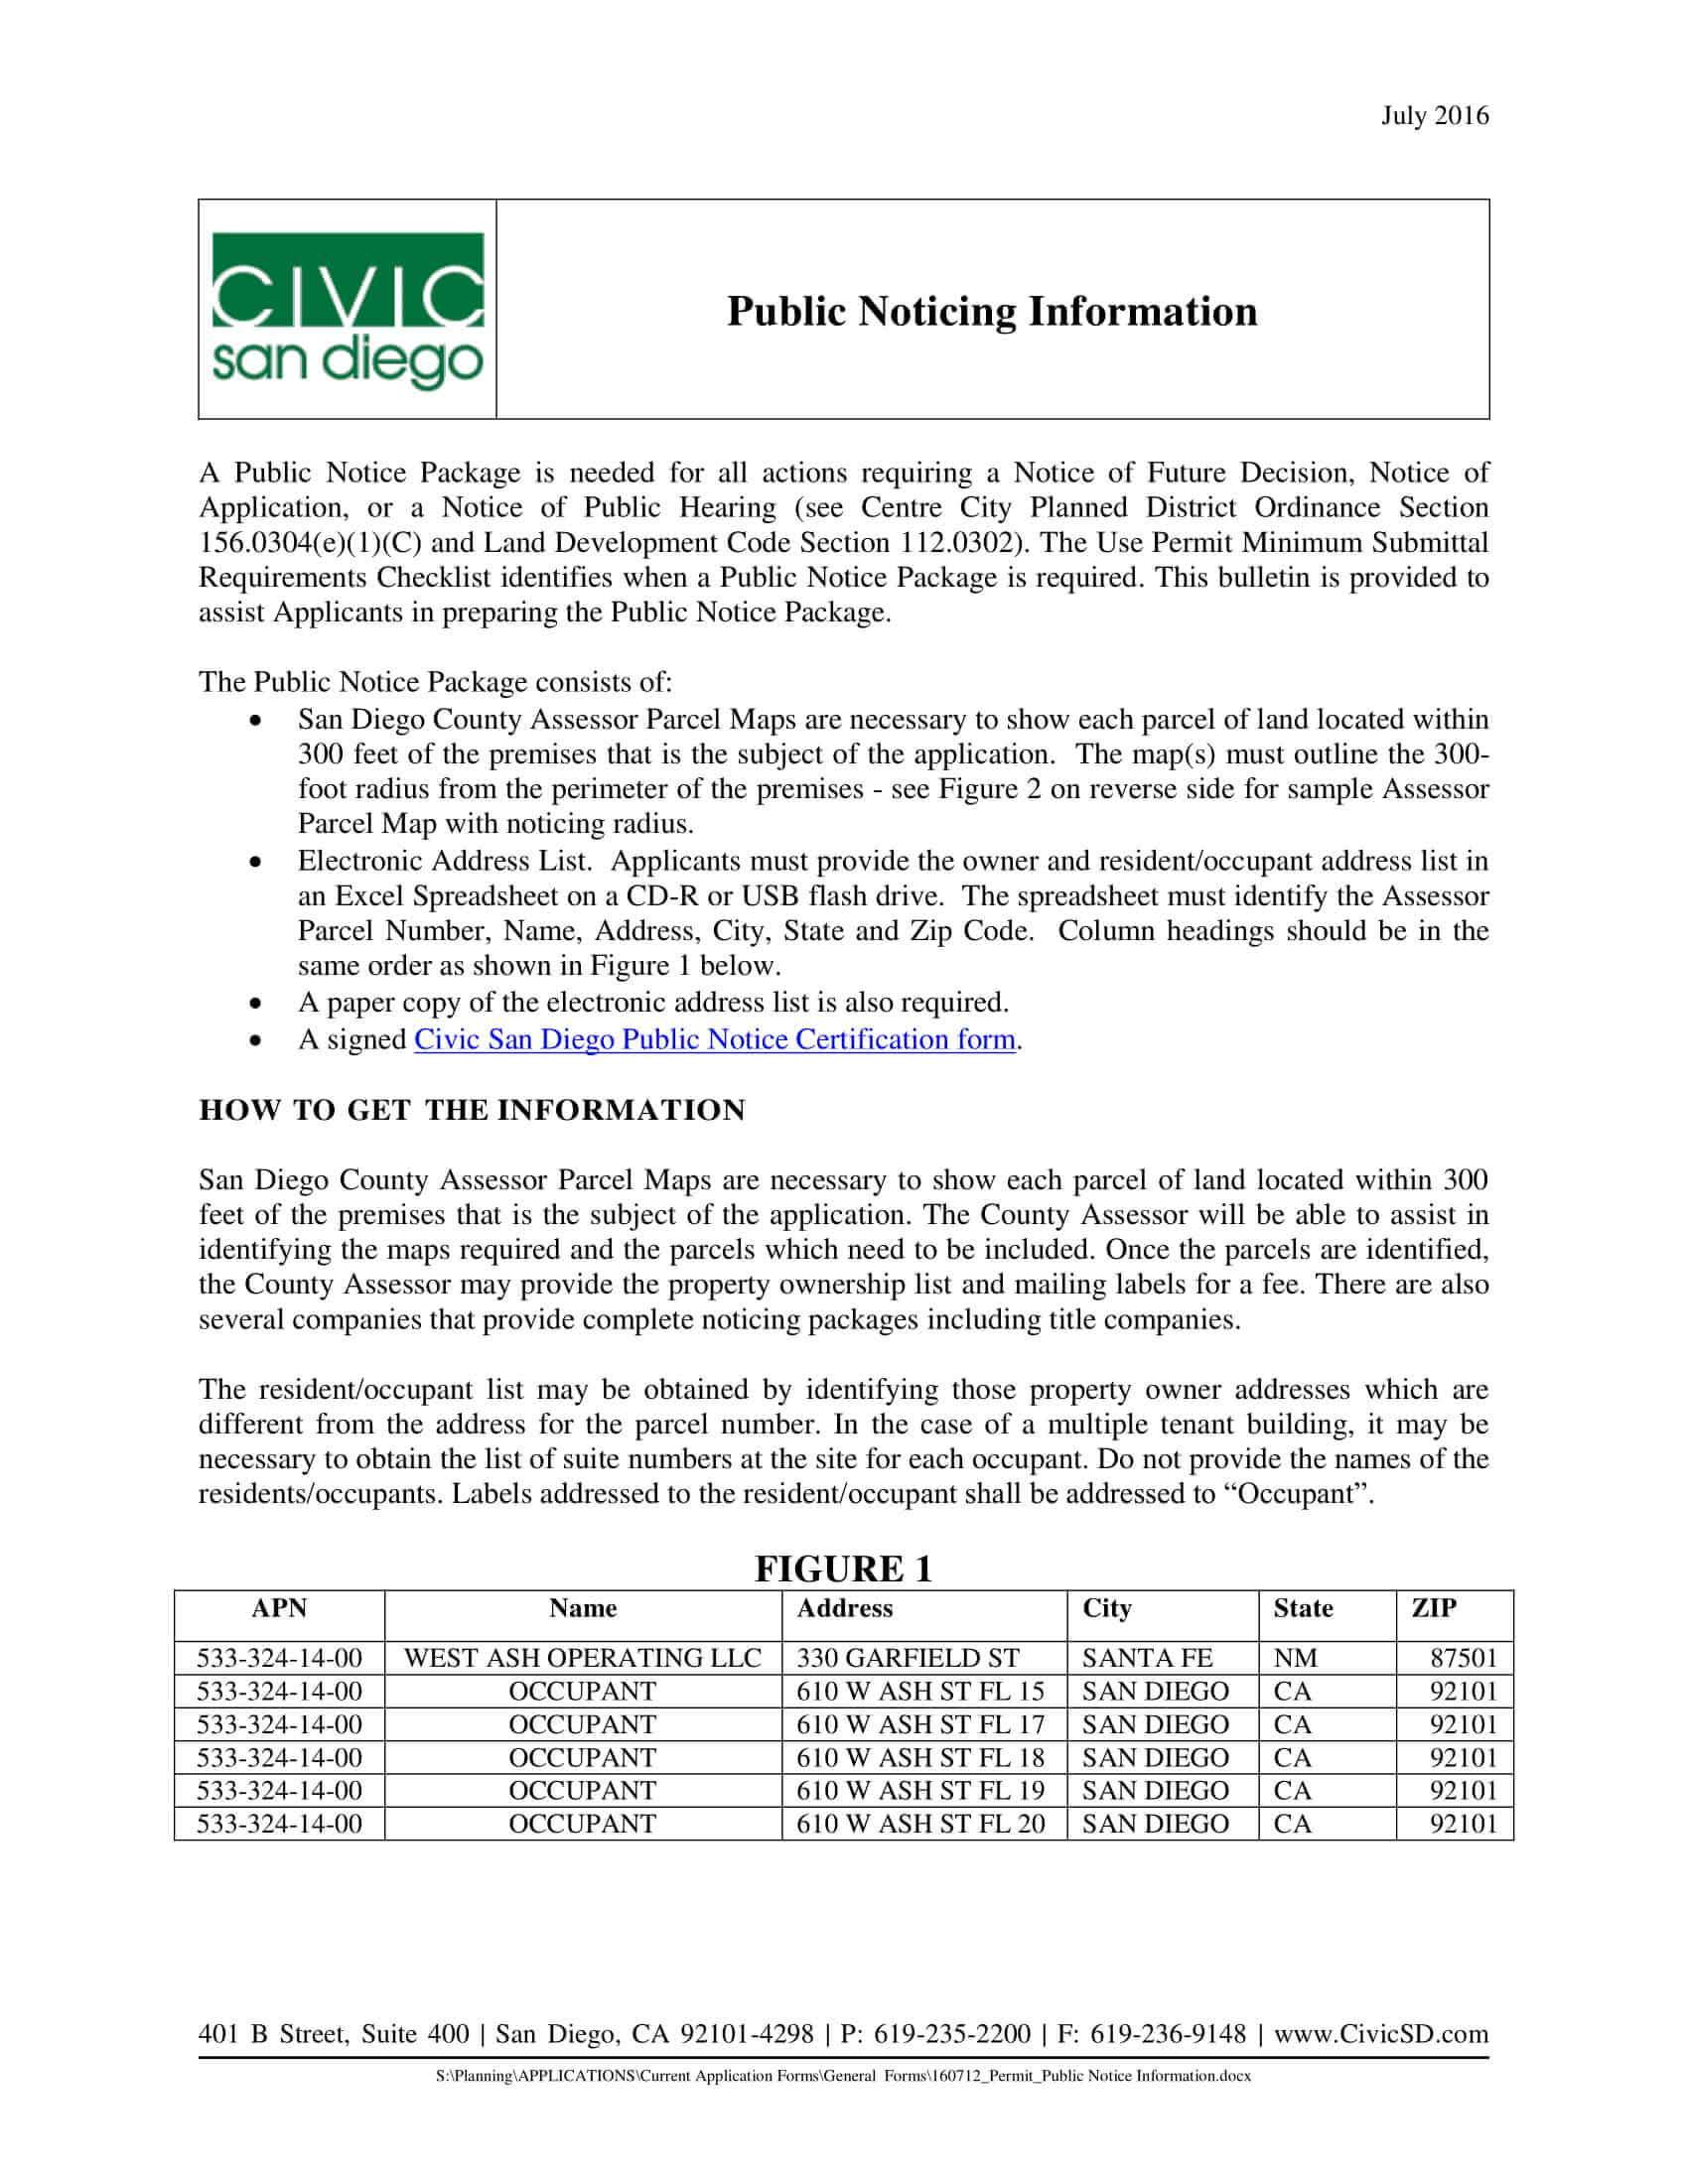 San Diego Civic Public Noticing Information 300 feet address list certification